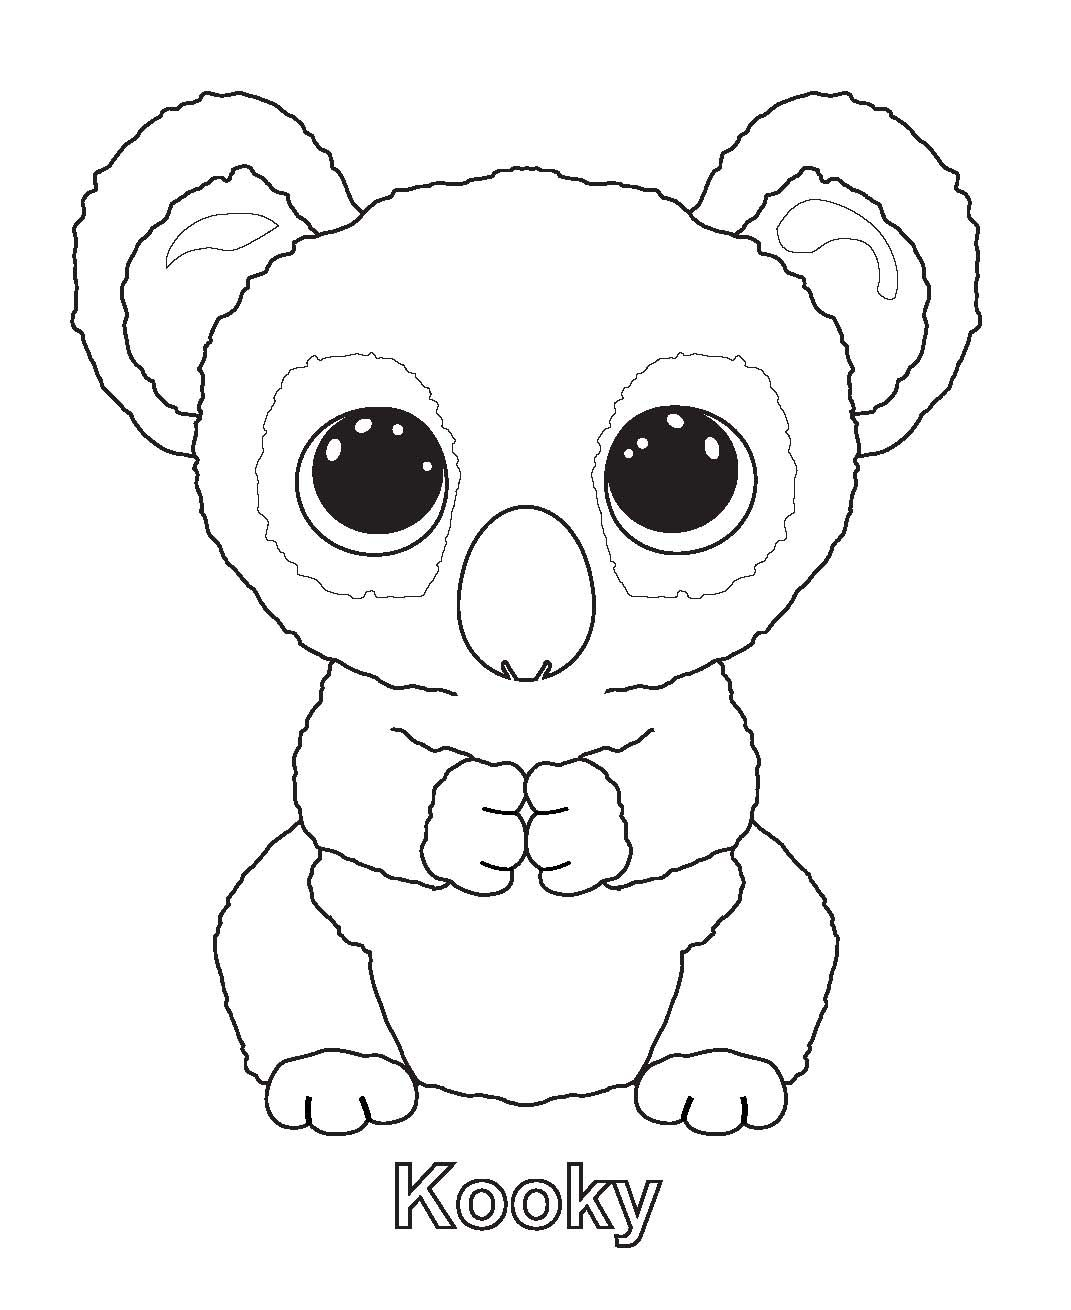 Beanie Boo Coloring Pages Beanie Boo Birthdays Beanie Boo Party